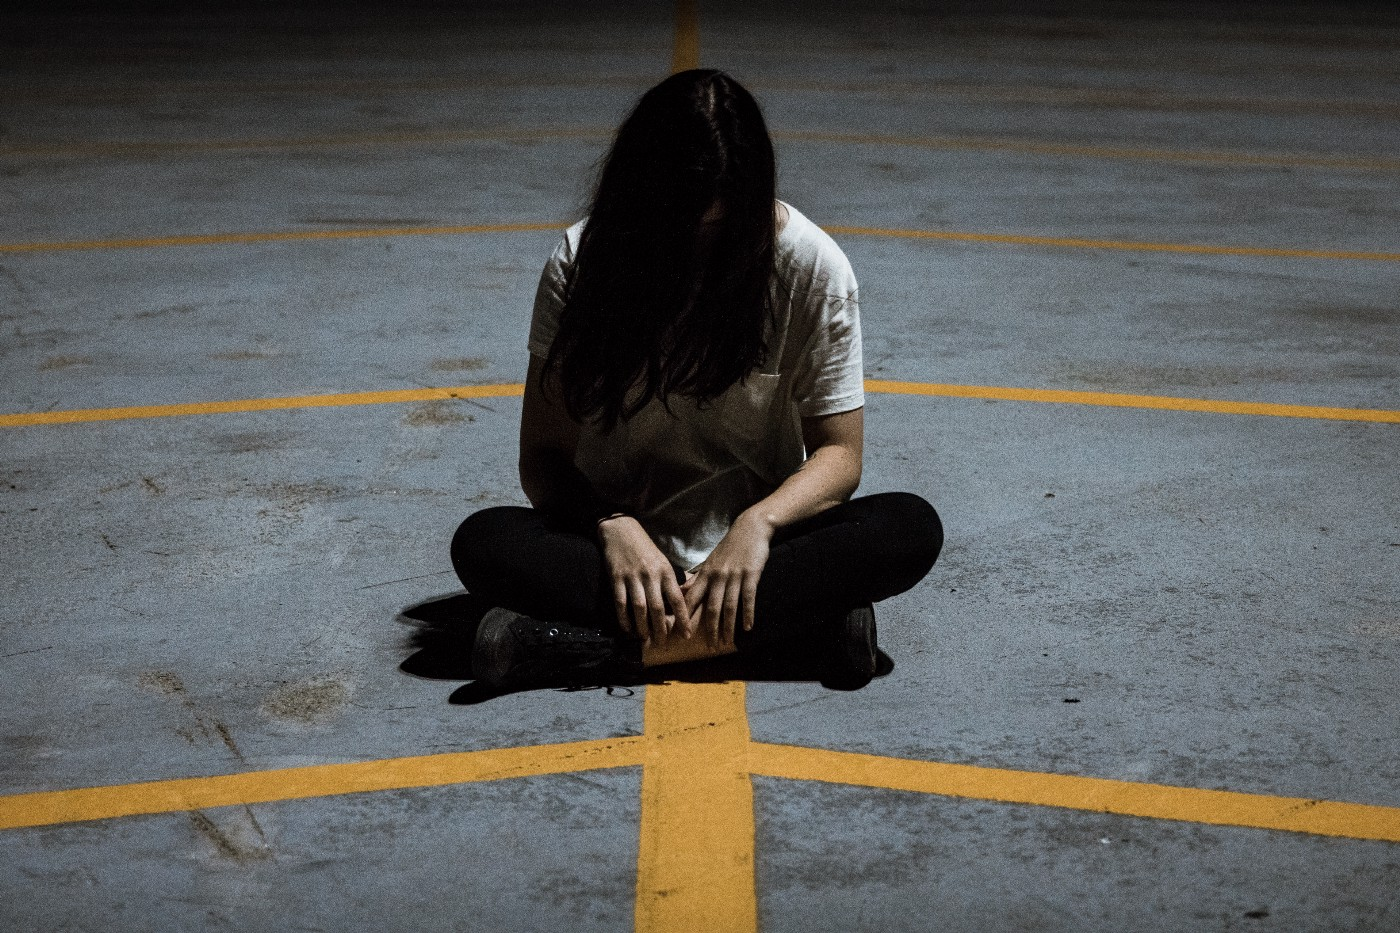 Stock photo of a woman sitting cross-legged on a concrete floor. Her hair is covering her face.